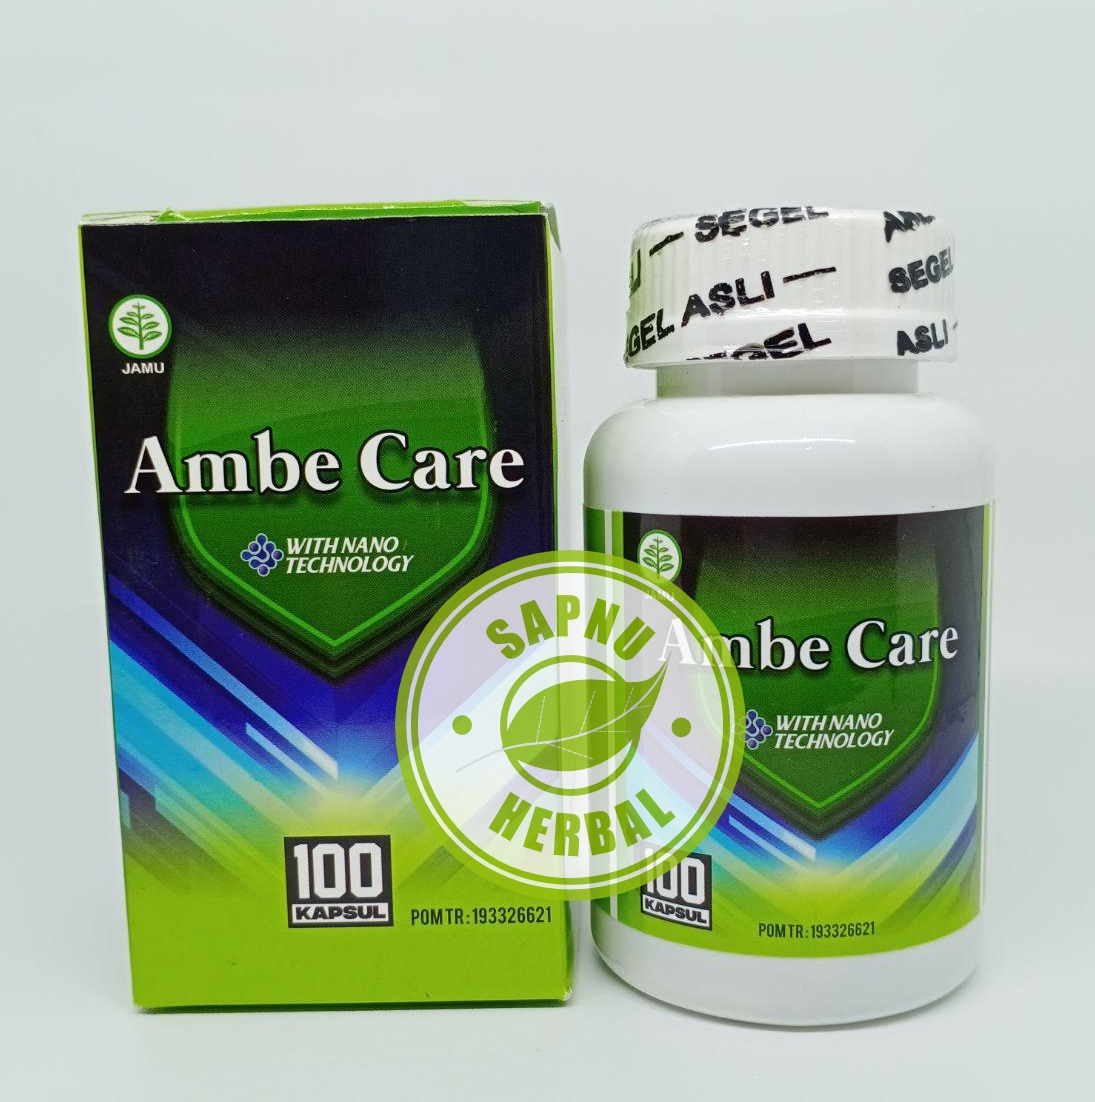 Herbal AmbeCare